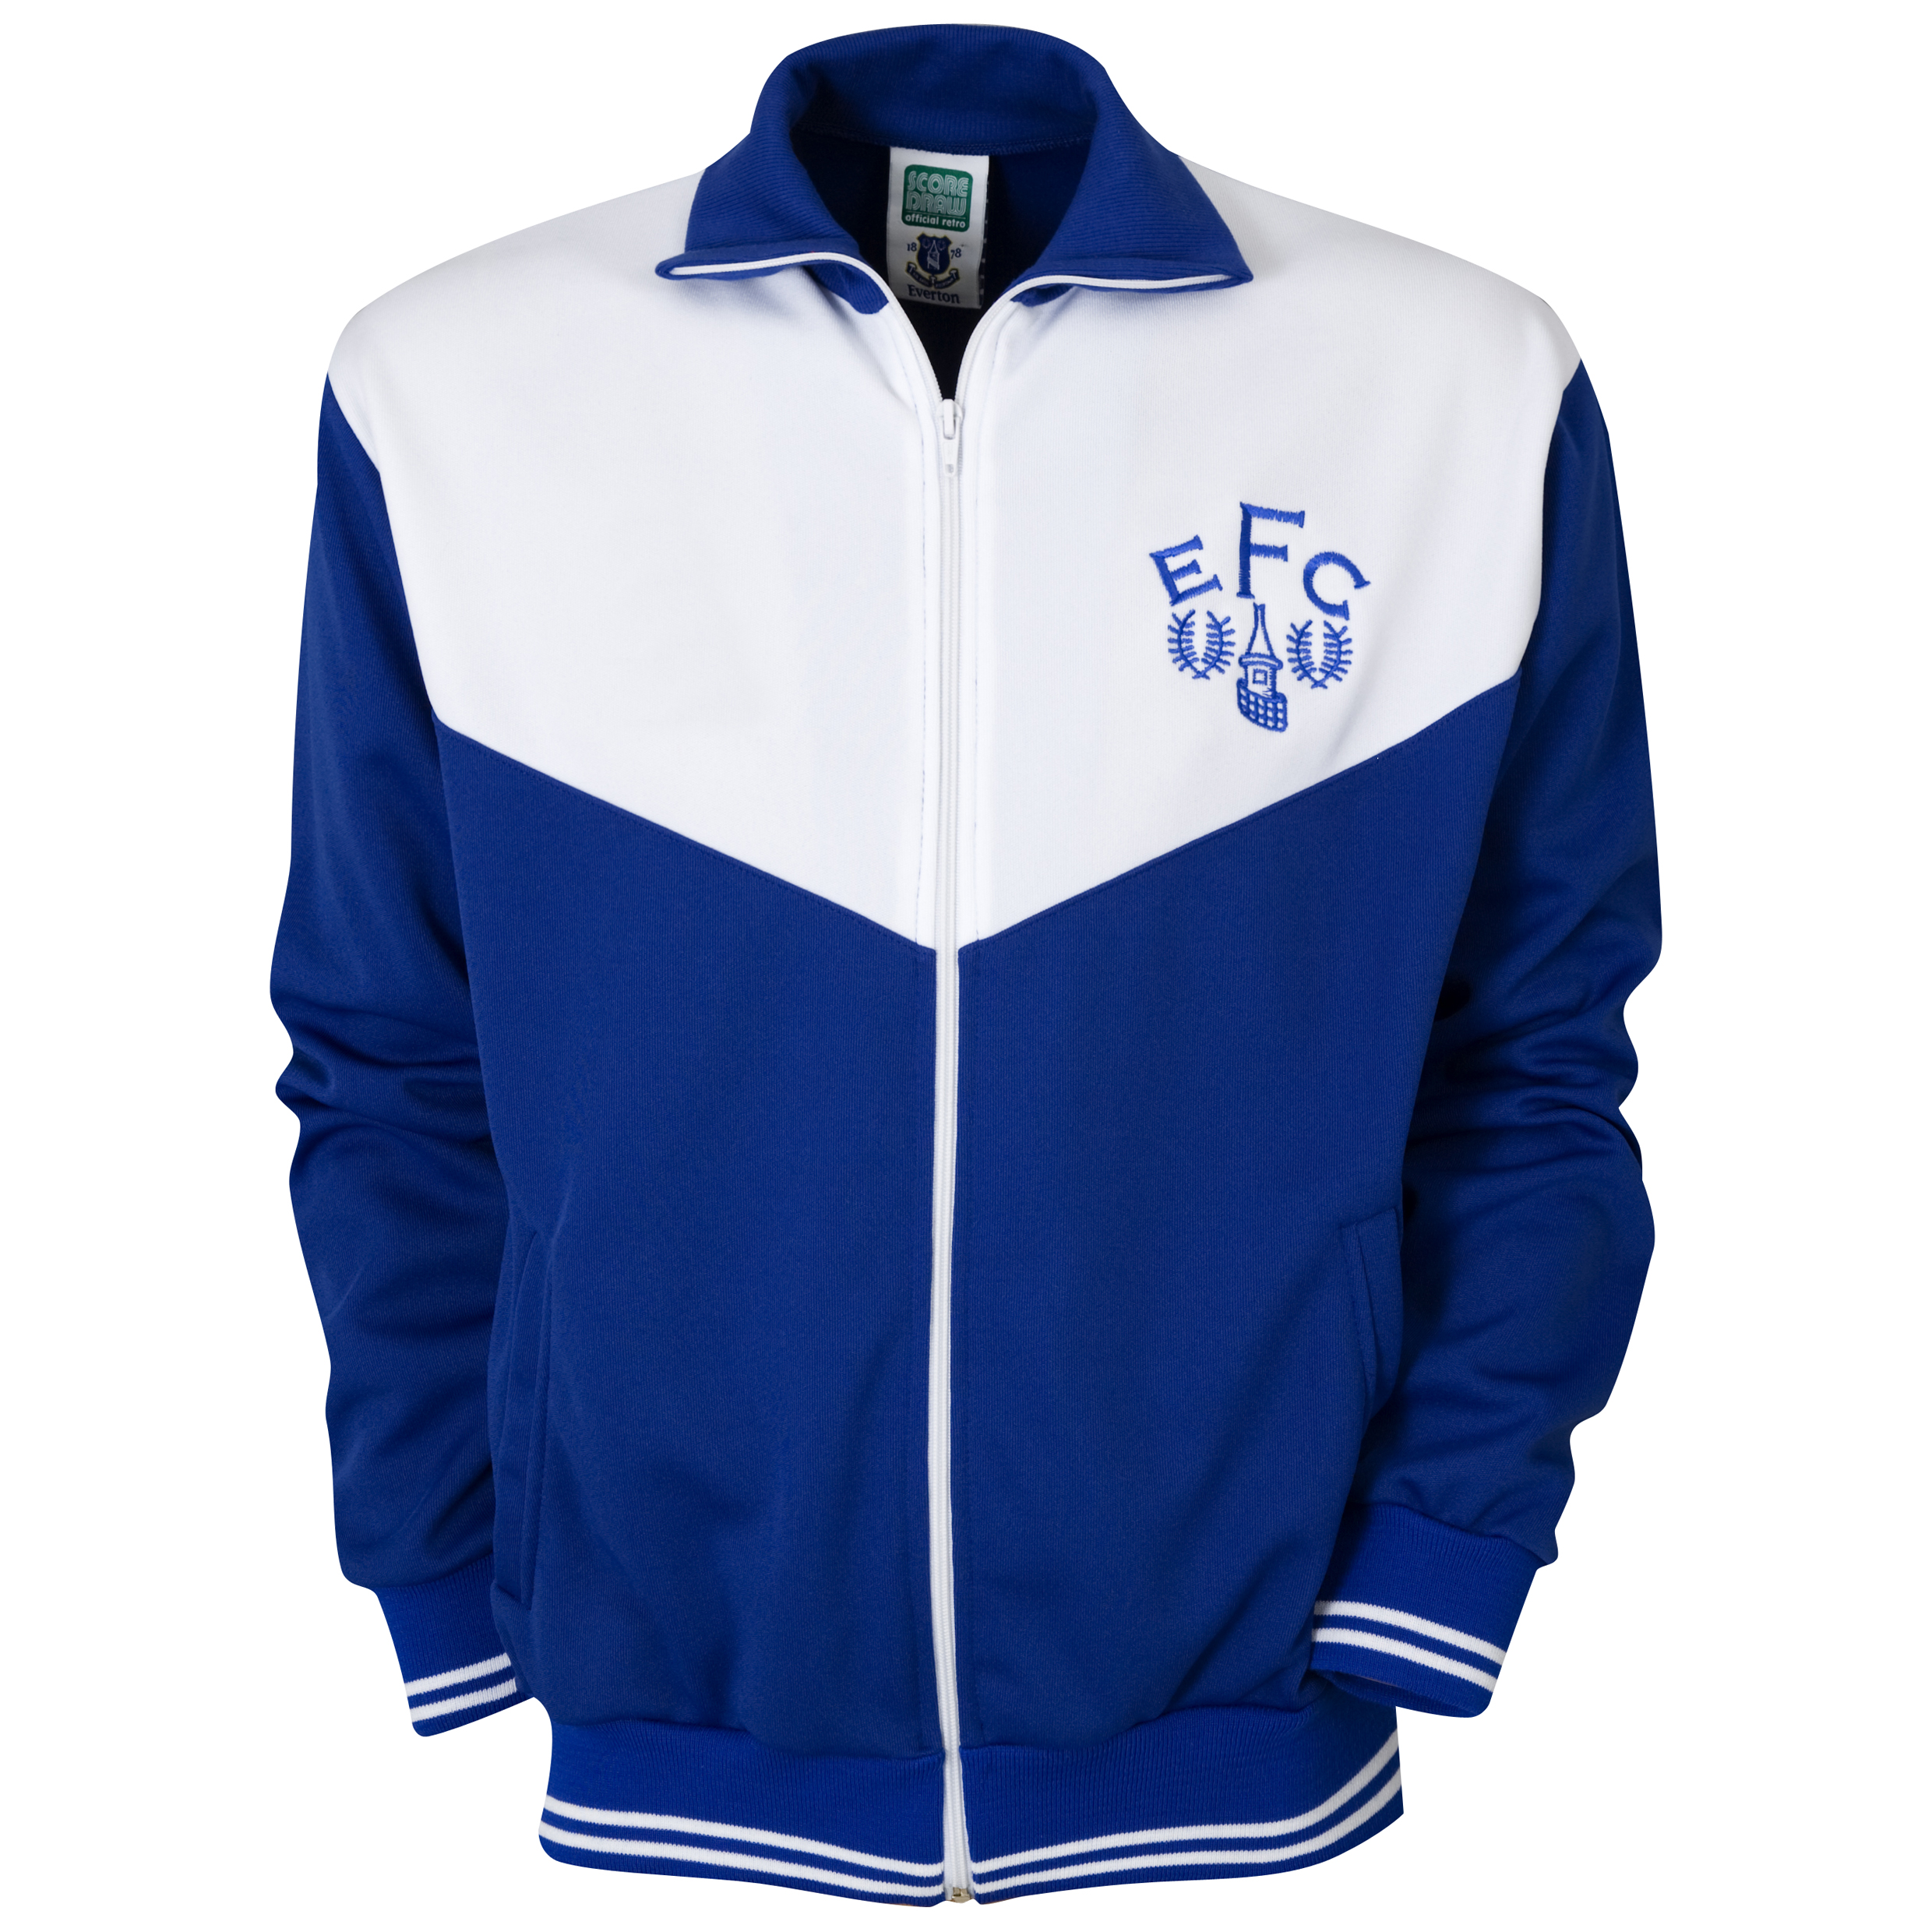 Everton 1986 Track Jacket - Blue